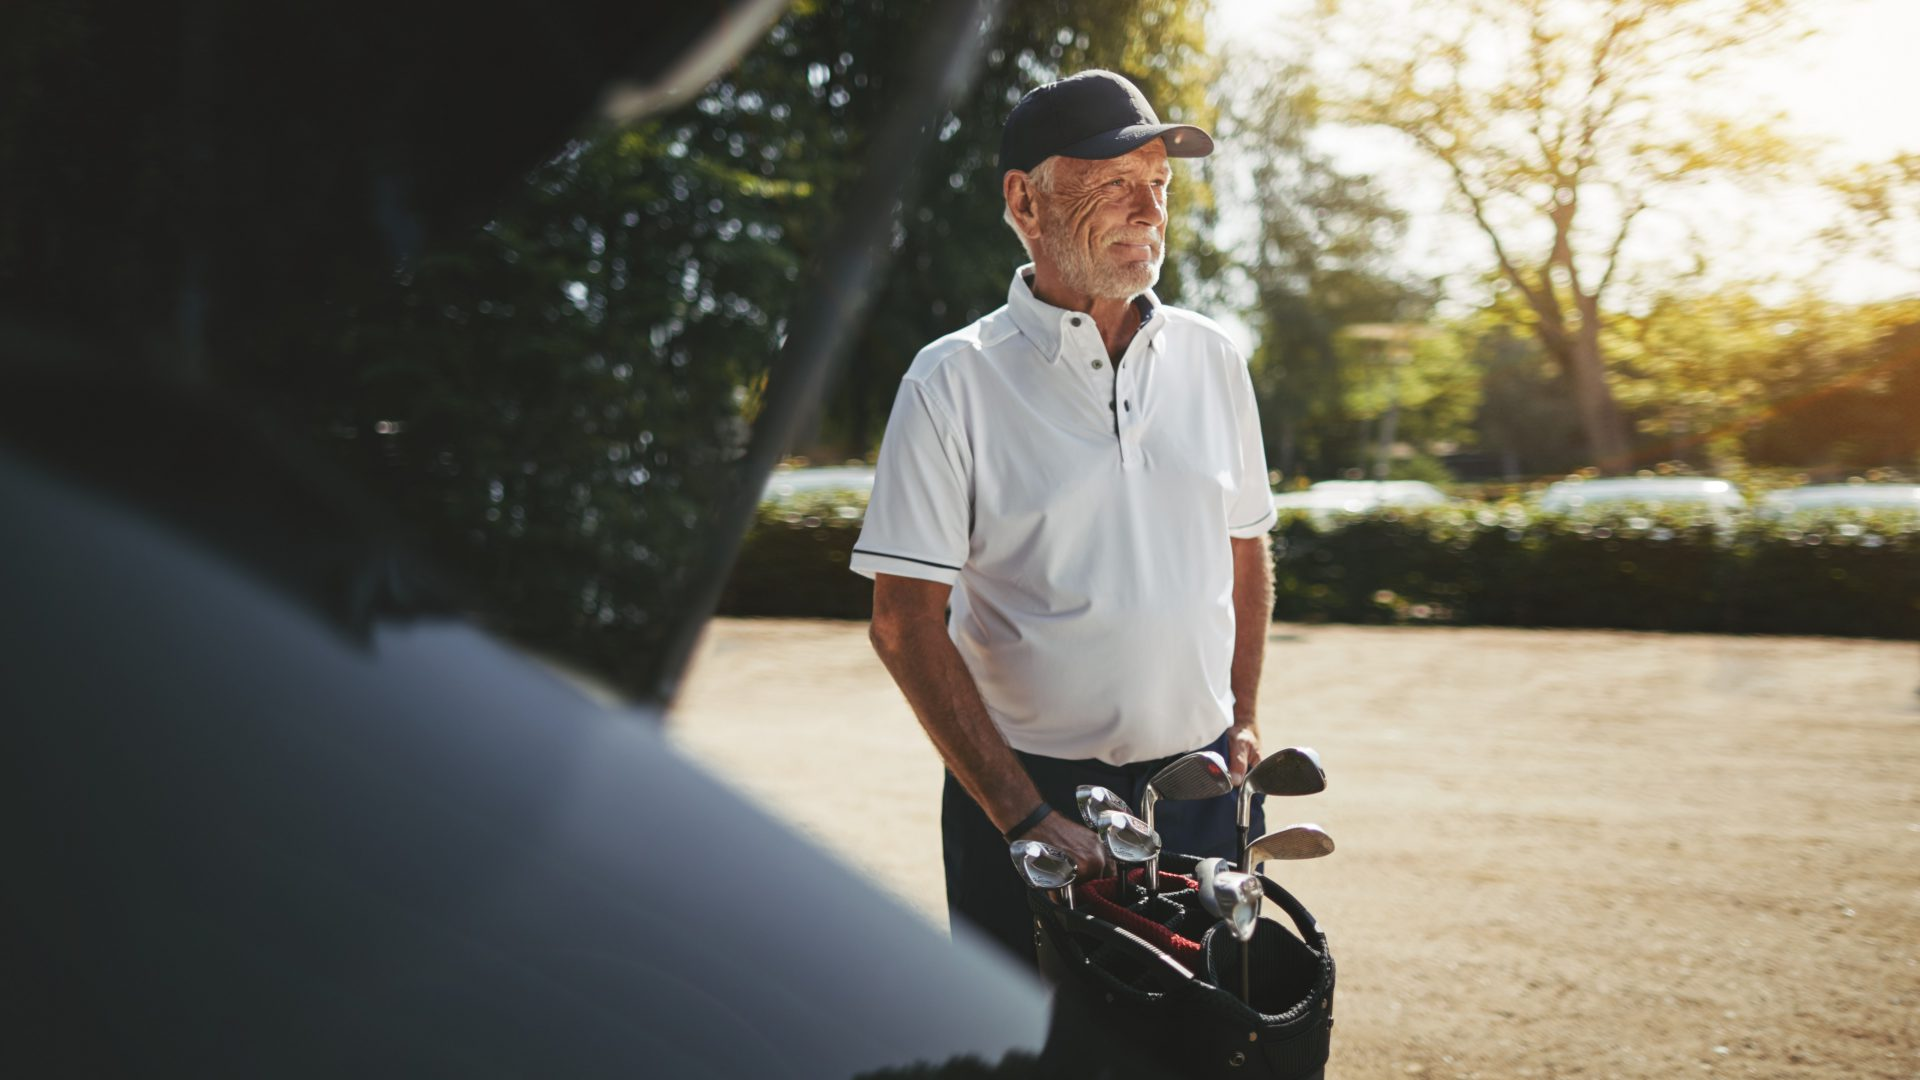 Most Useful Tips for Travel With Your Golf Clubs Safely